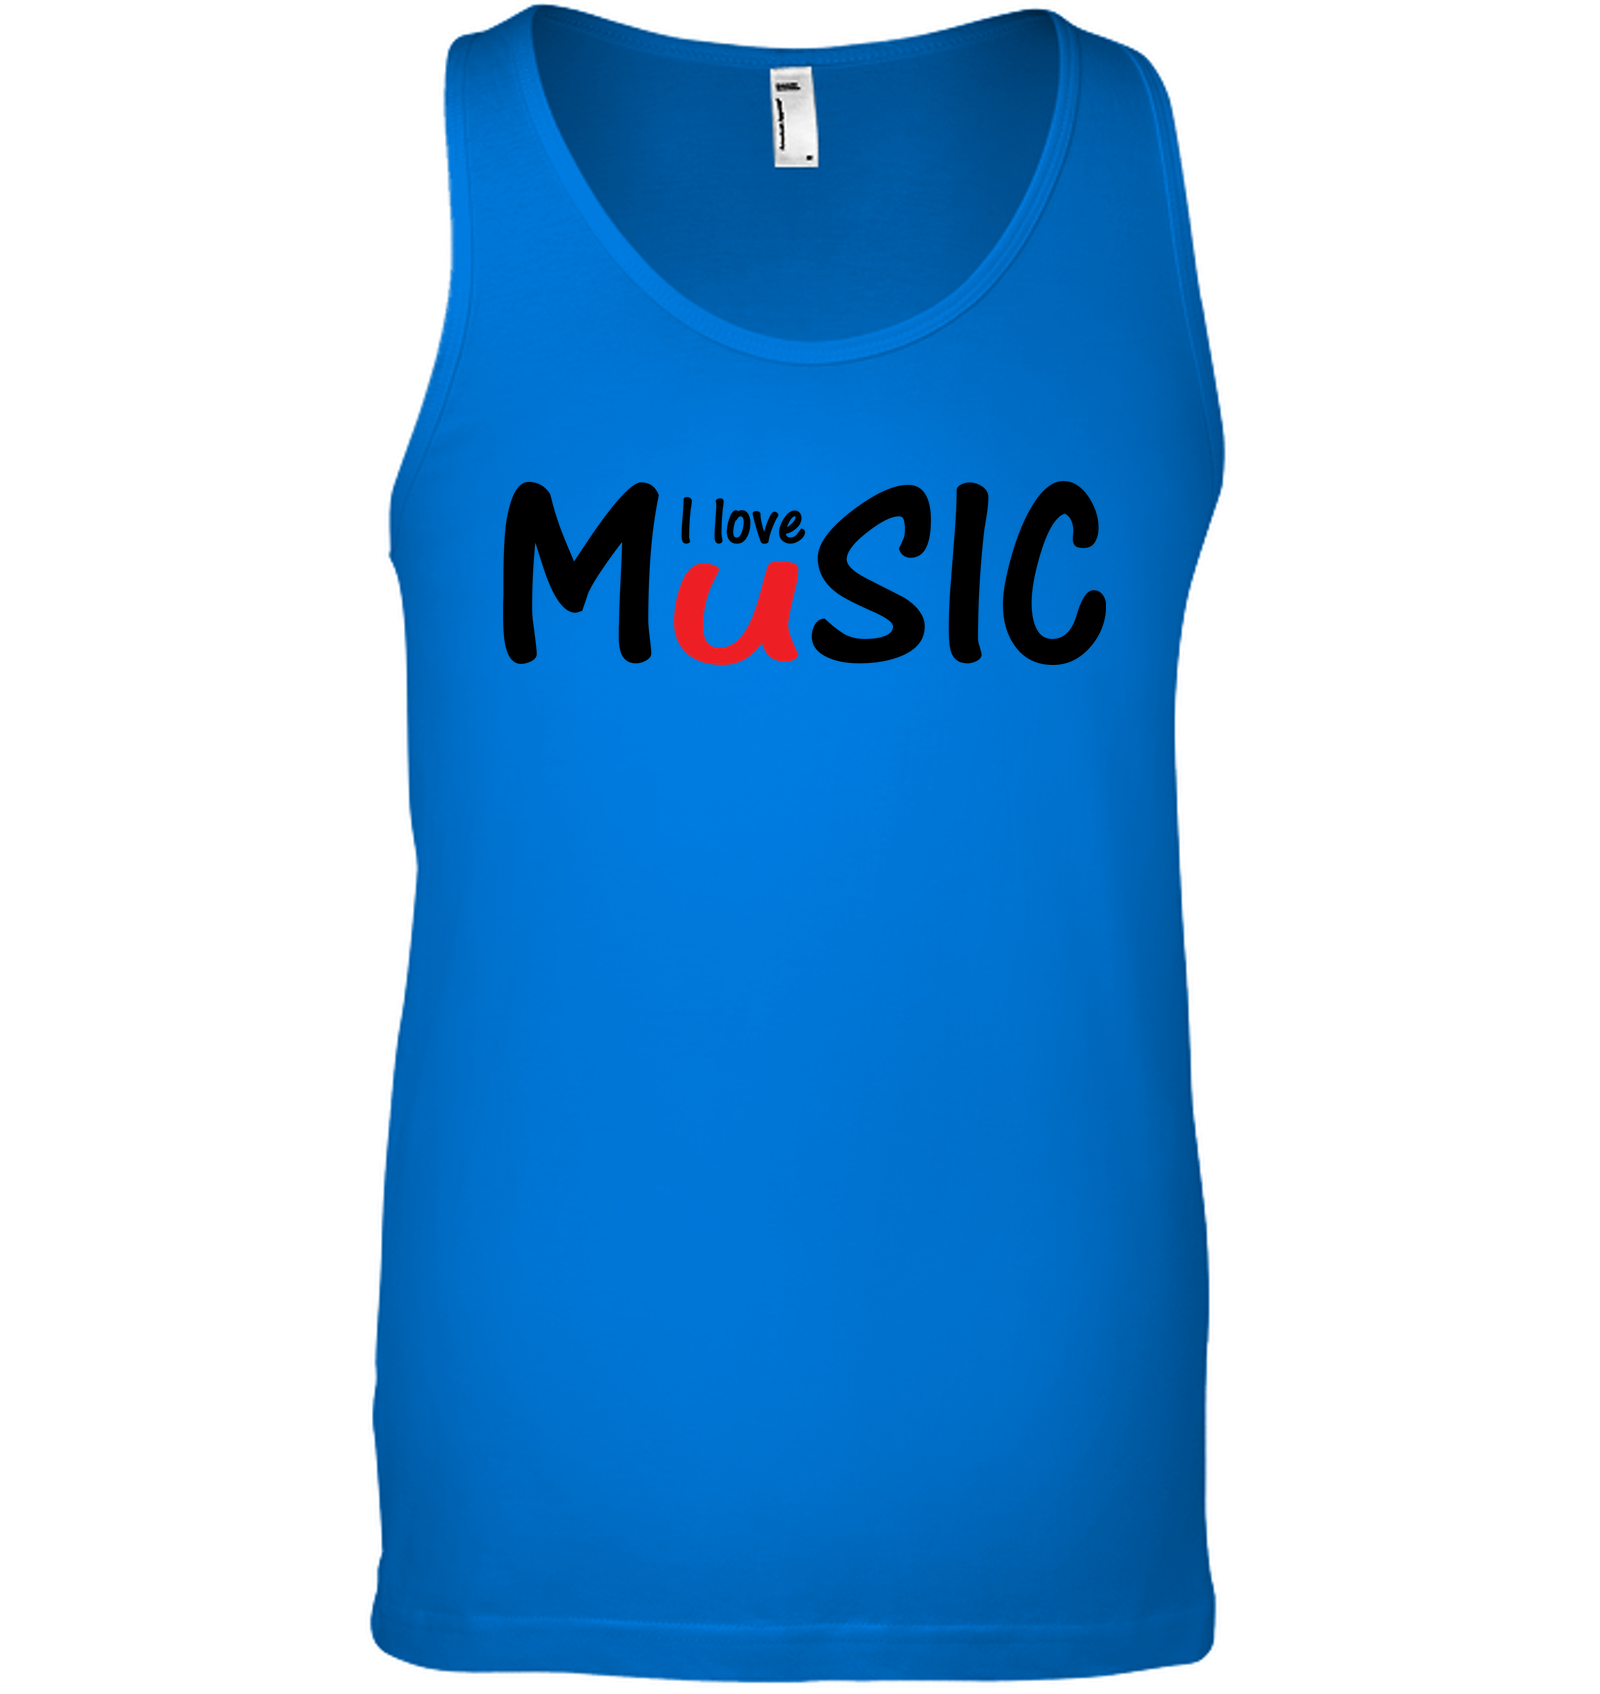 I Love Music plain and simple - Bella + Canvas Unisex Jersey Tank